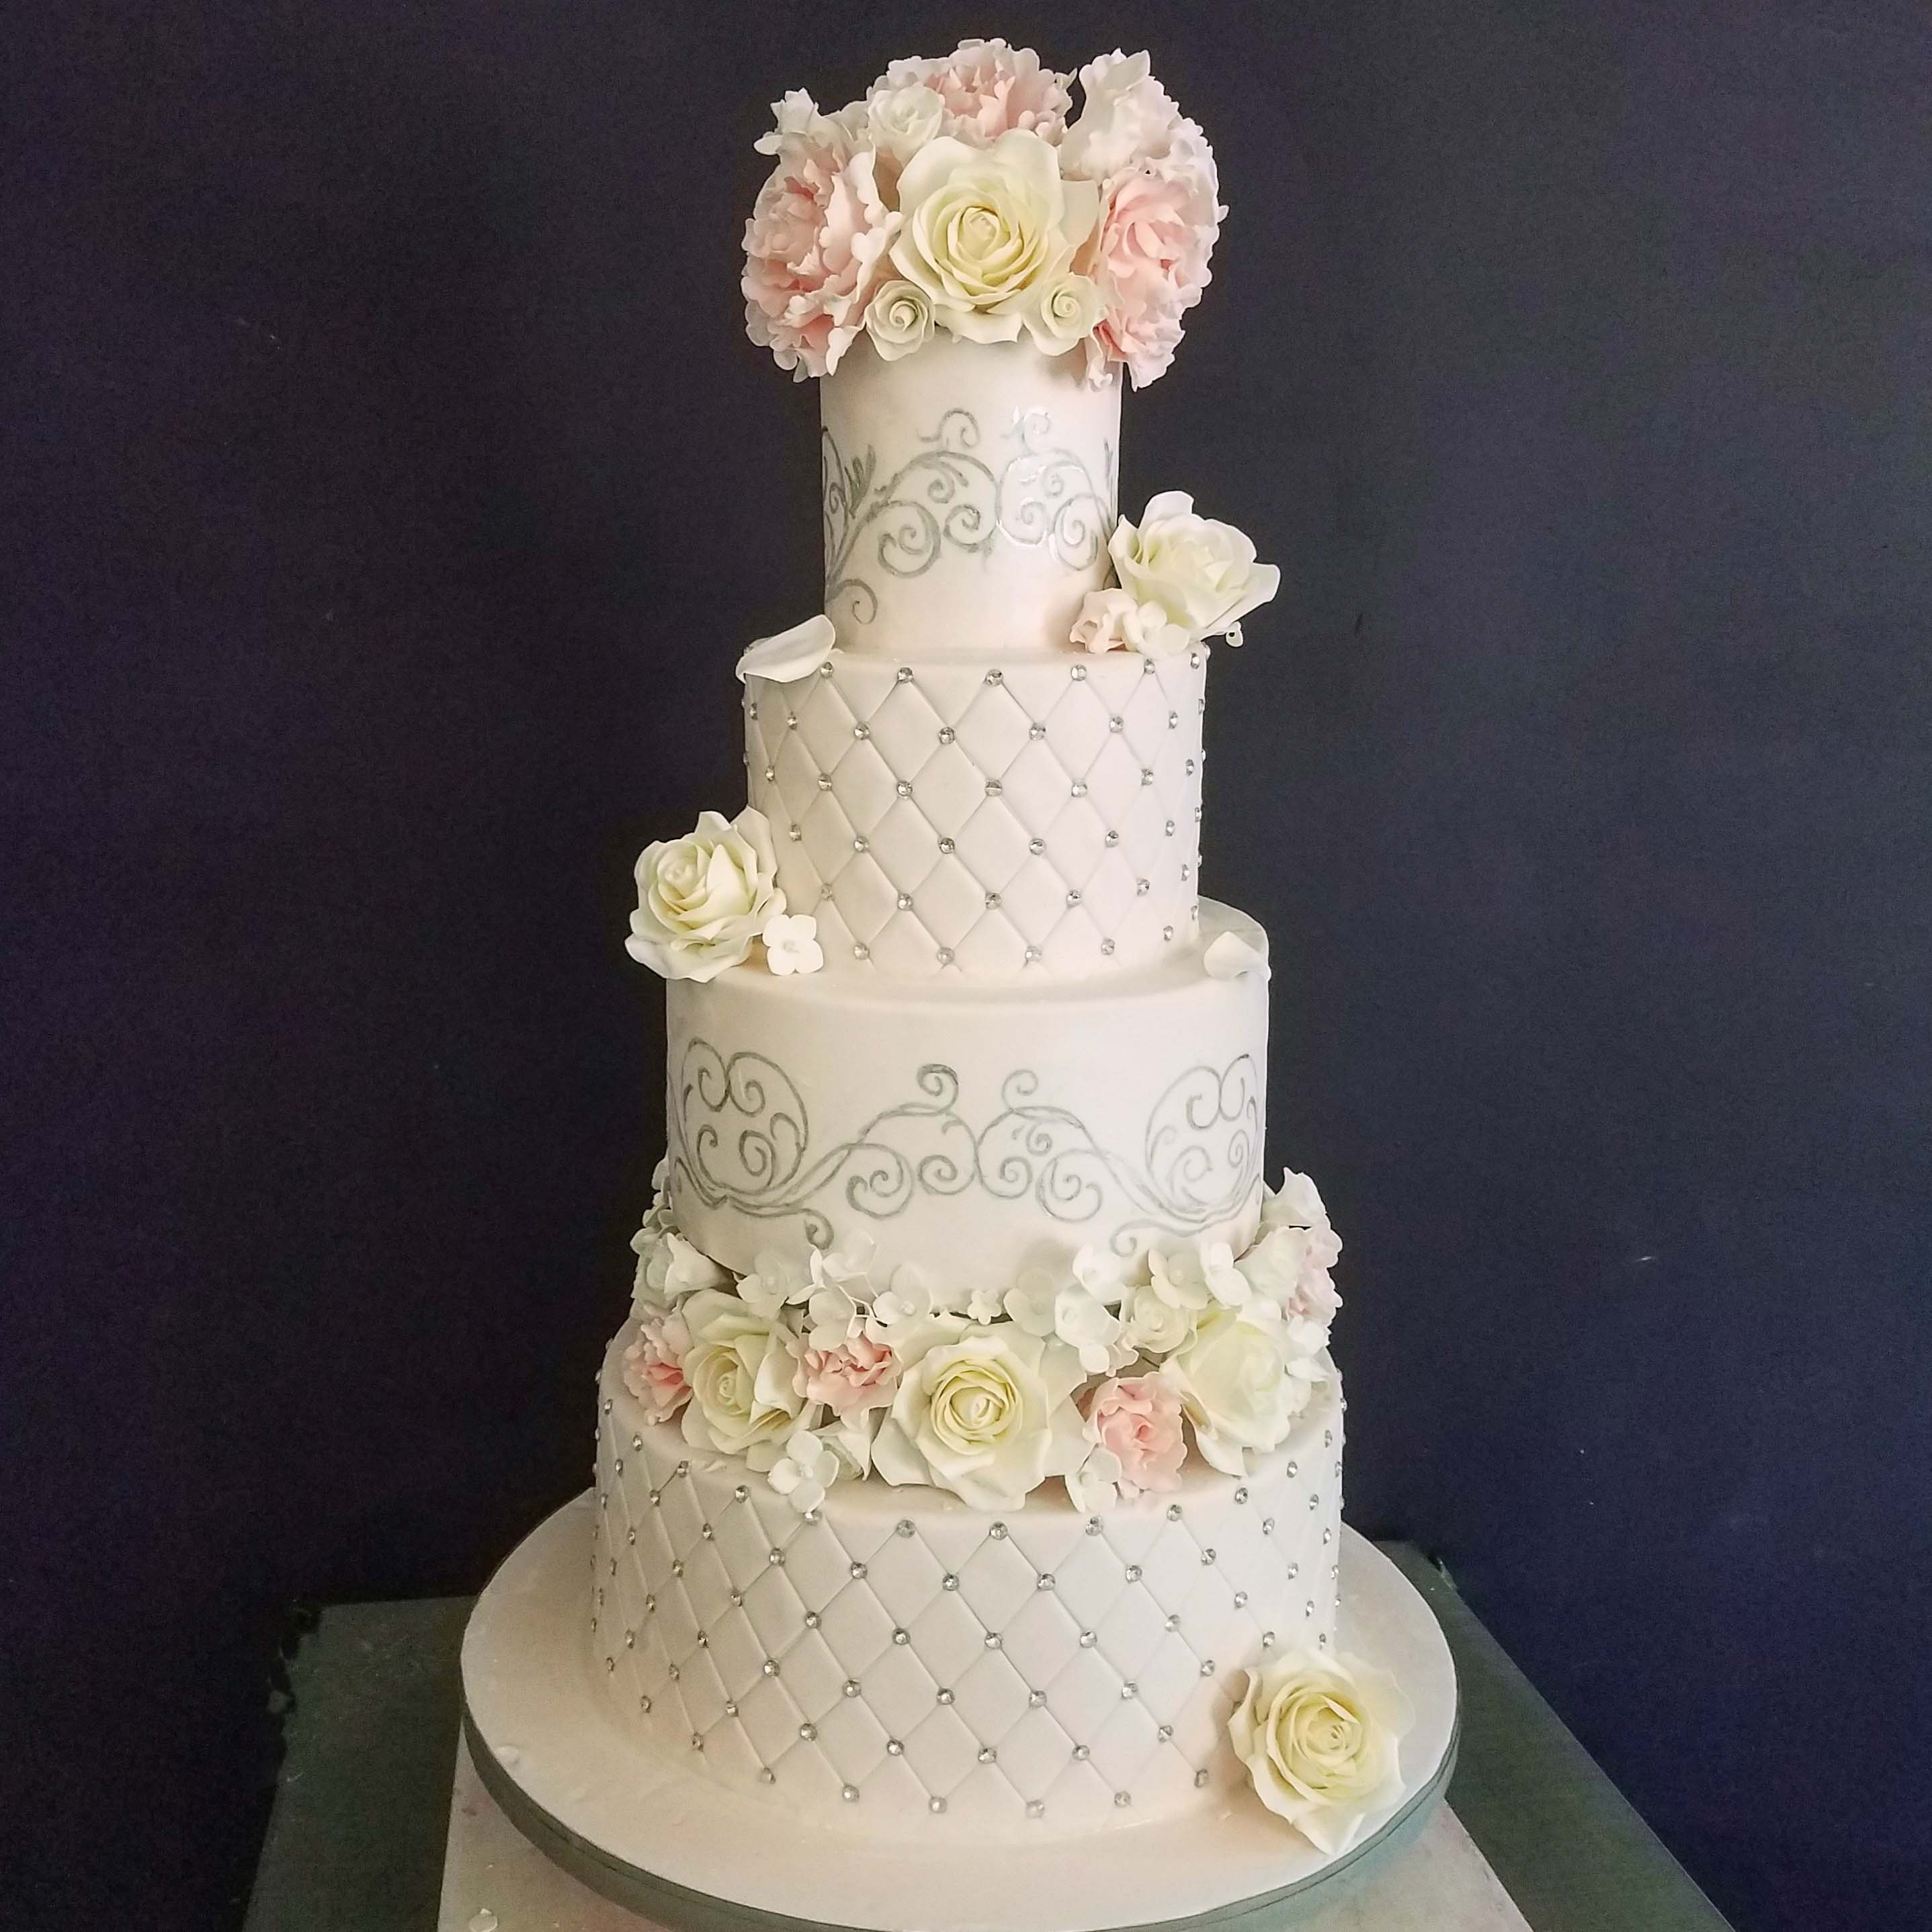 Best Tasting Wedding Cakes in New Jersey